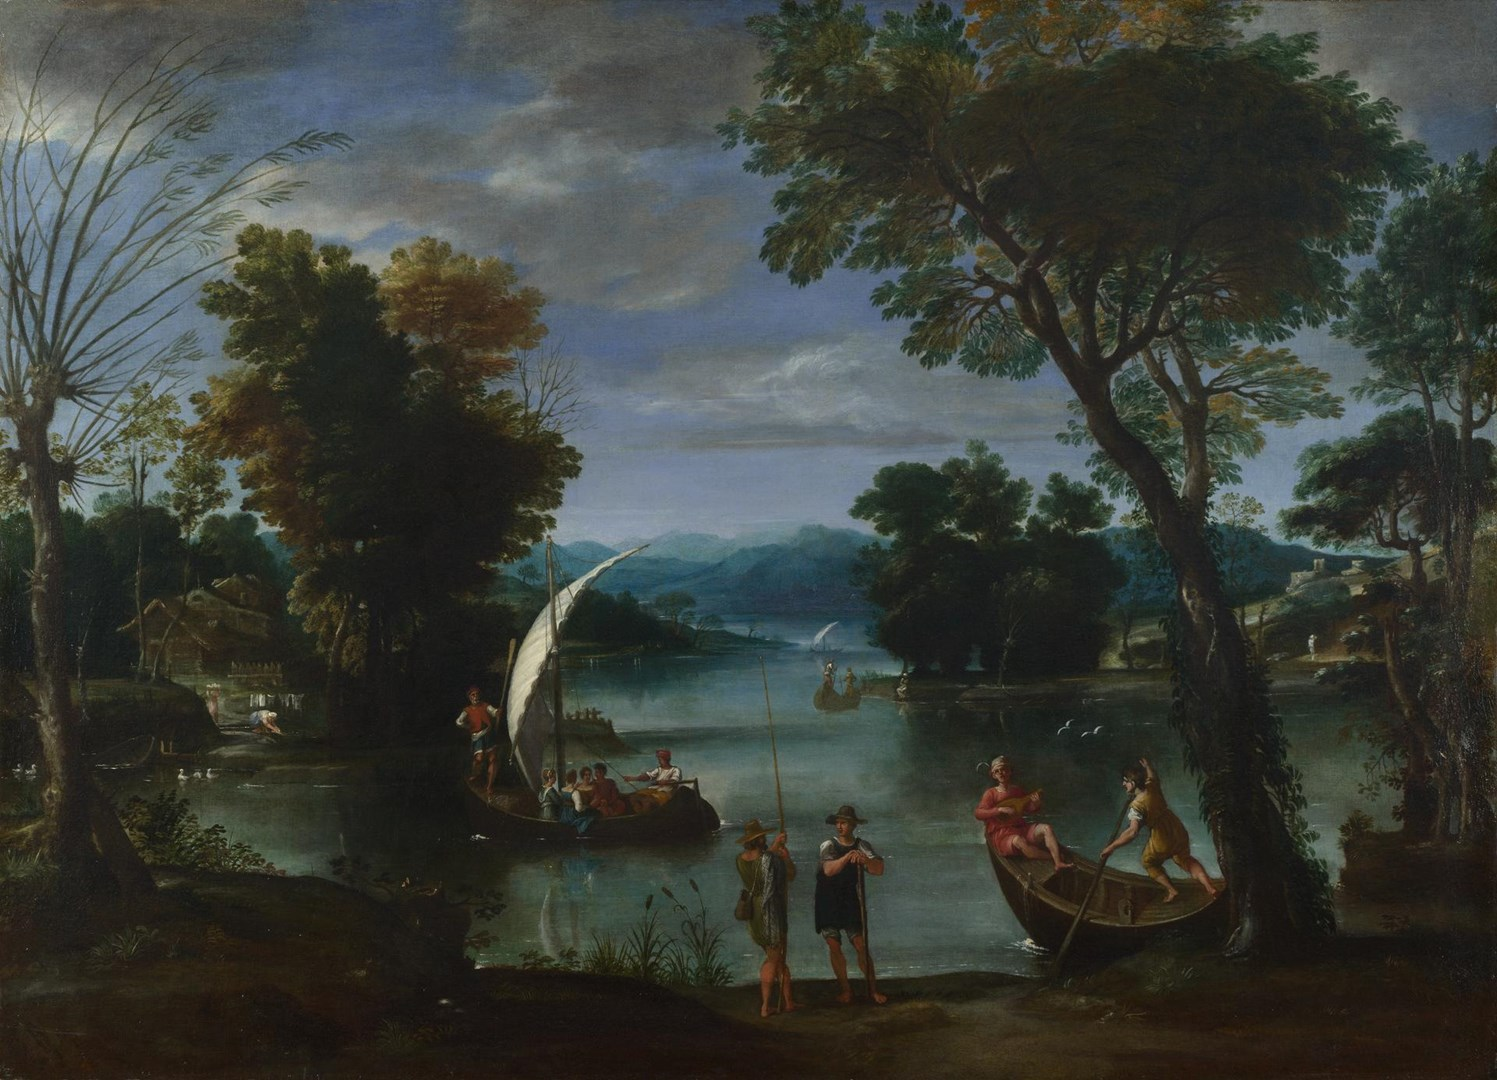 Landscape with a River and Boats by Giovanni Battista Viola